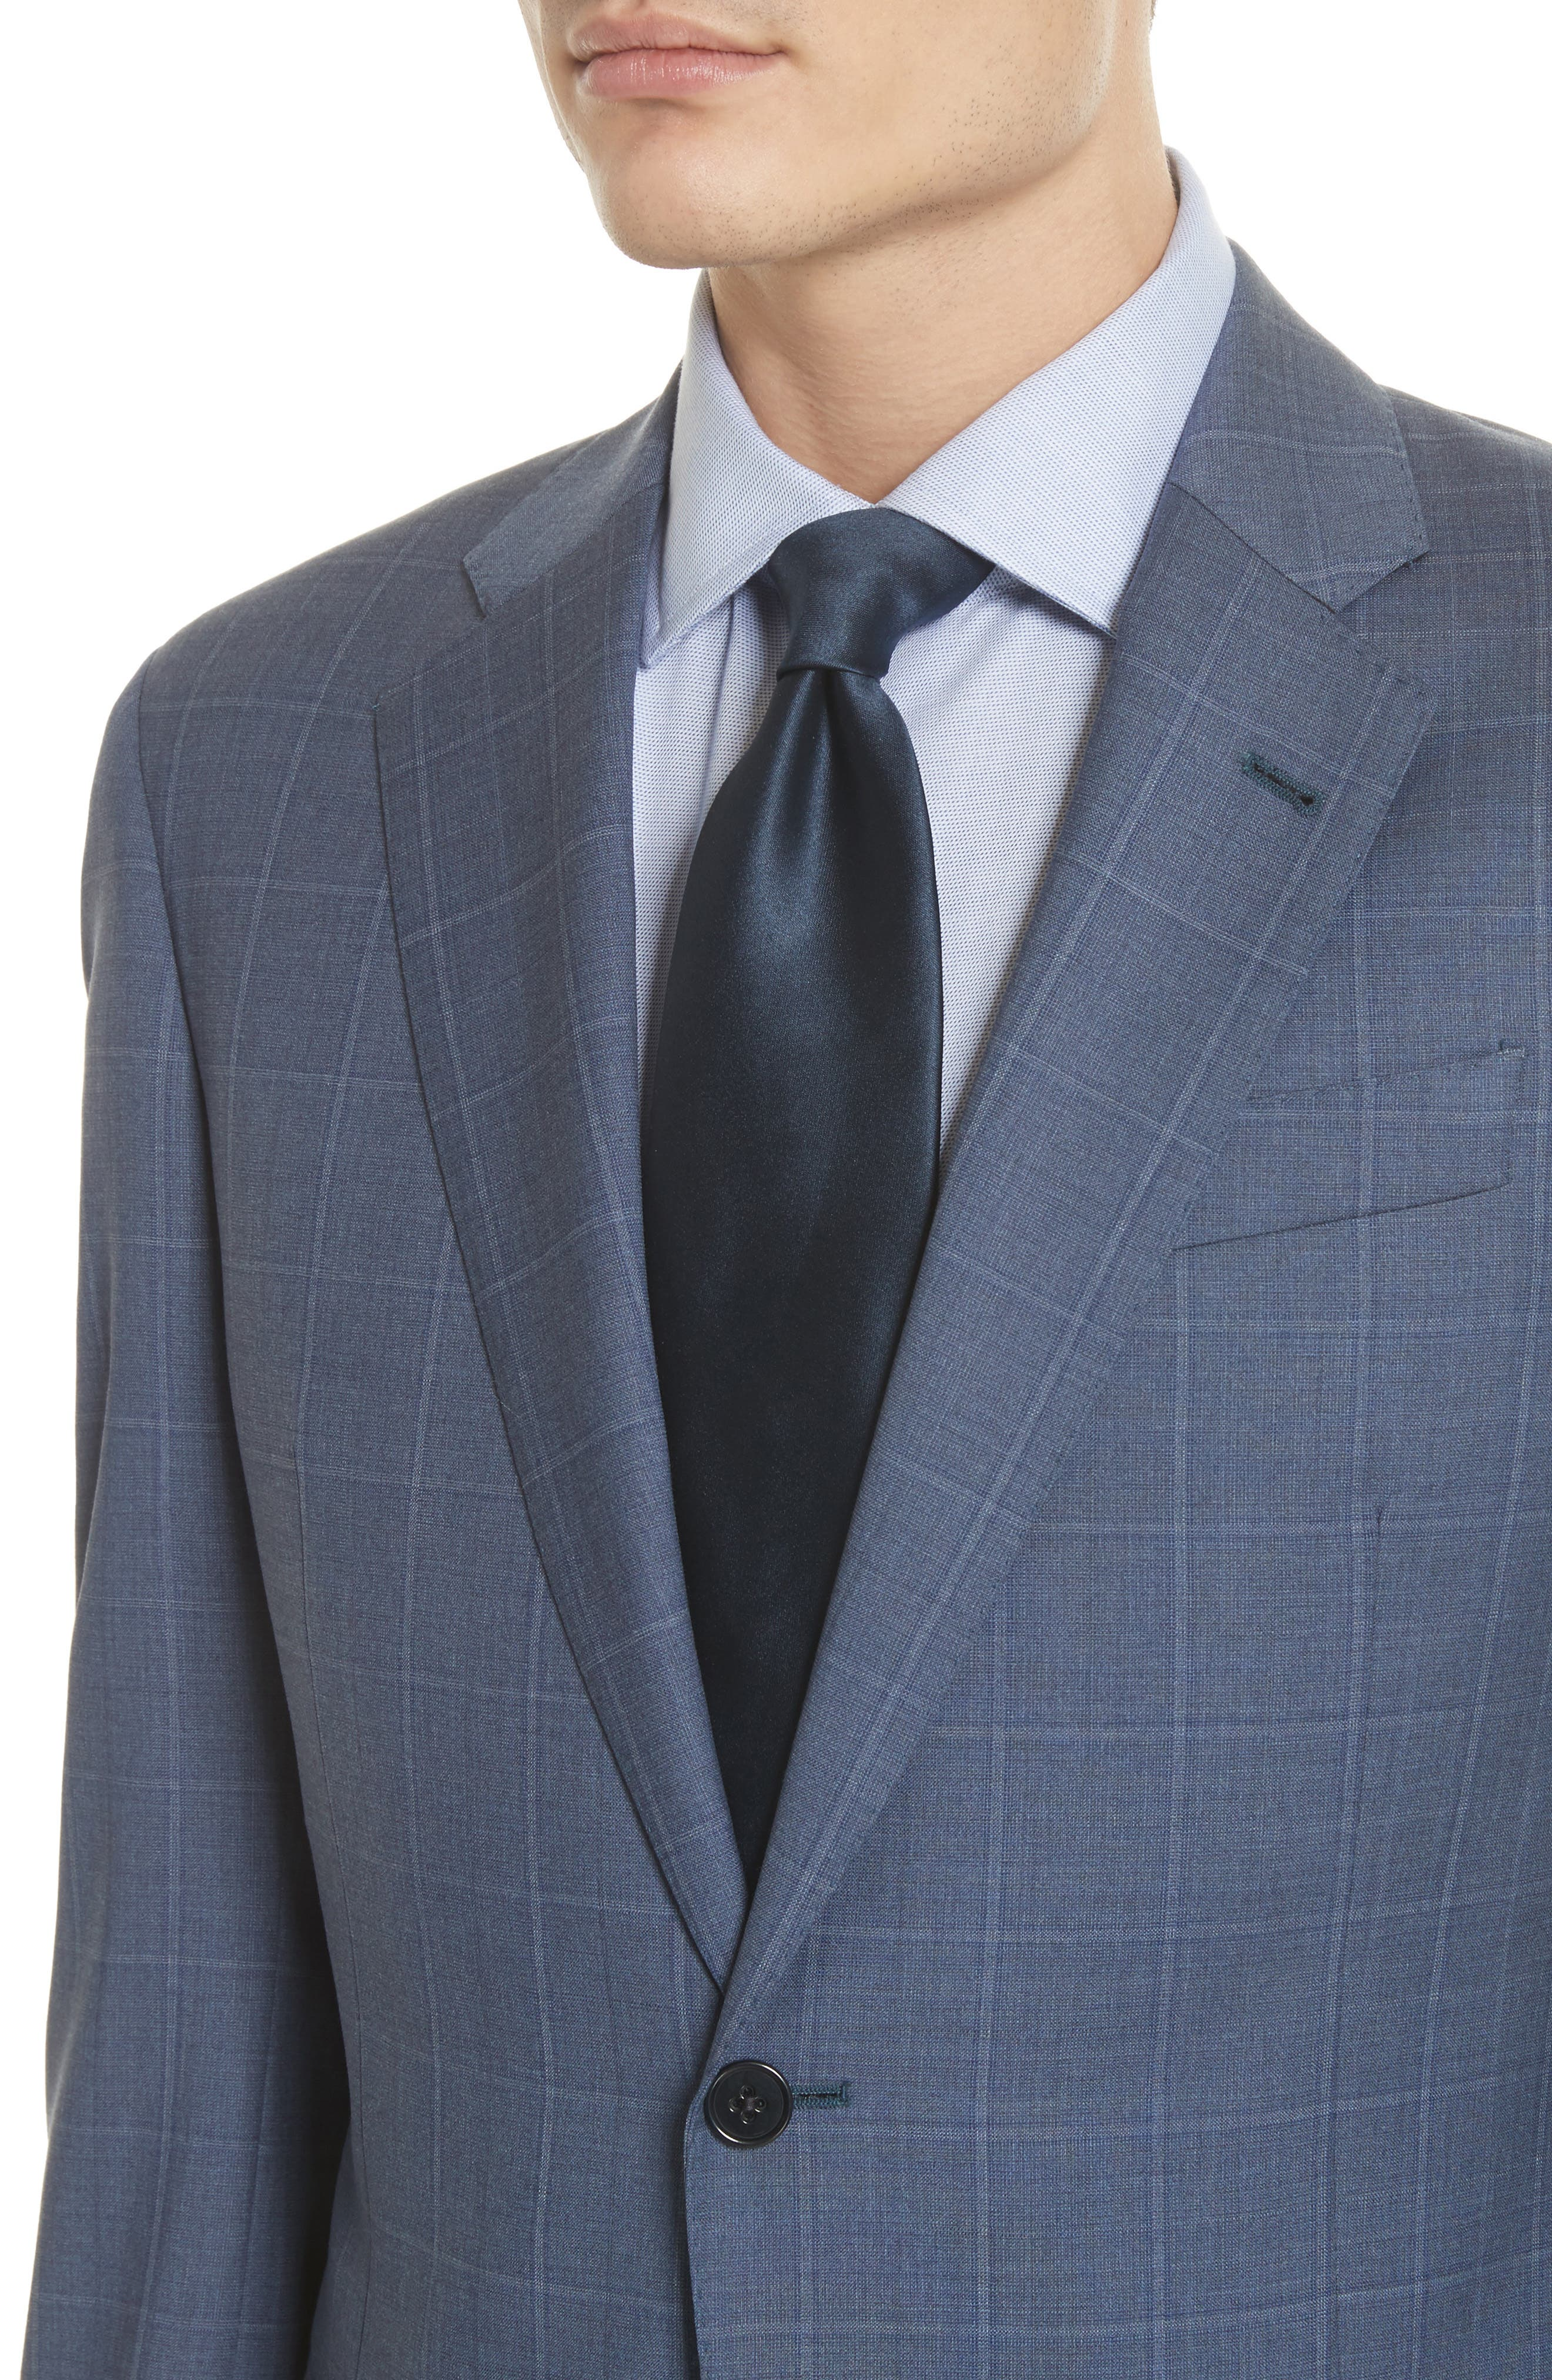 G Line Trim Fit Windowpane Wool Suit,                             Alternate thumbnail 4, color,                             400